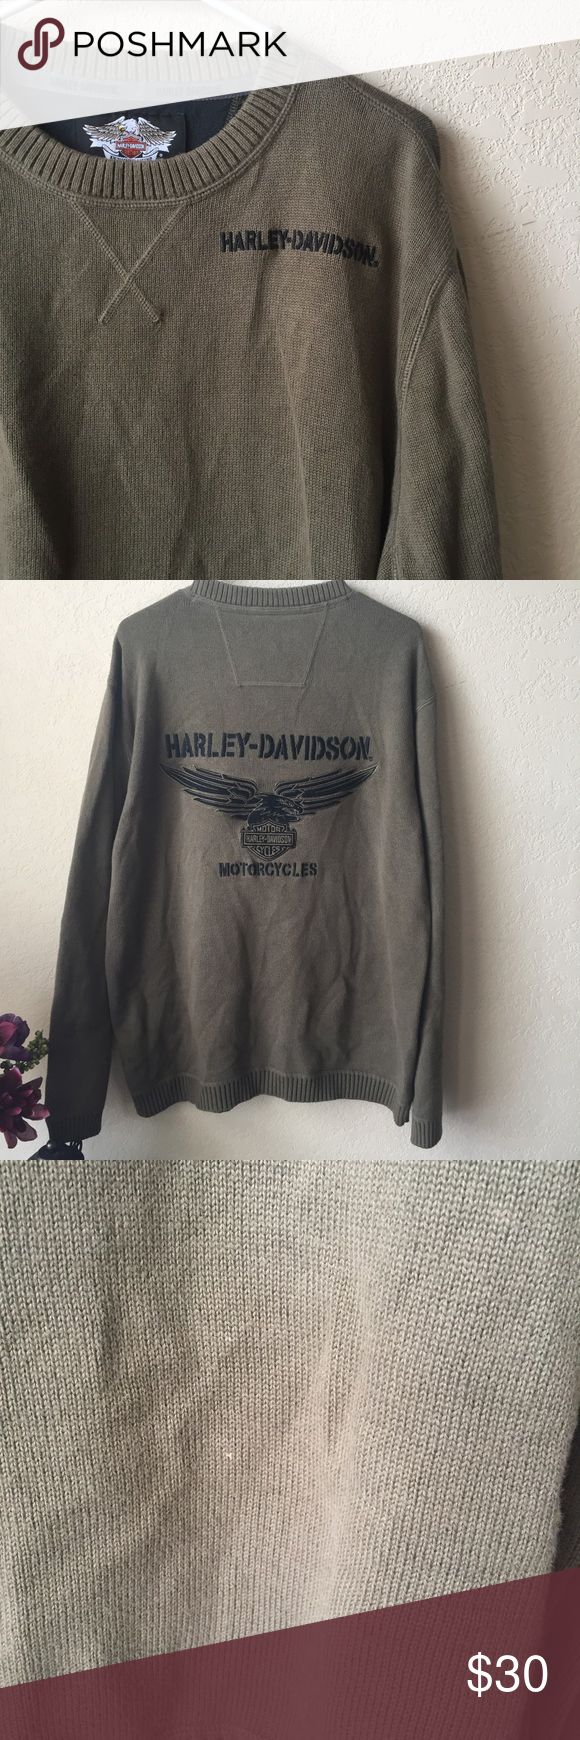 Harley Davidson crewneck olive green sweater Great condition! No rips, two small little marks on front of sweater, see pictures for details. Let me know if you have questions! * sorry for the wrinkles, they will wash fall out* Harley-Davidson Sweaters Crewneck